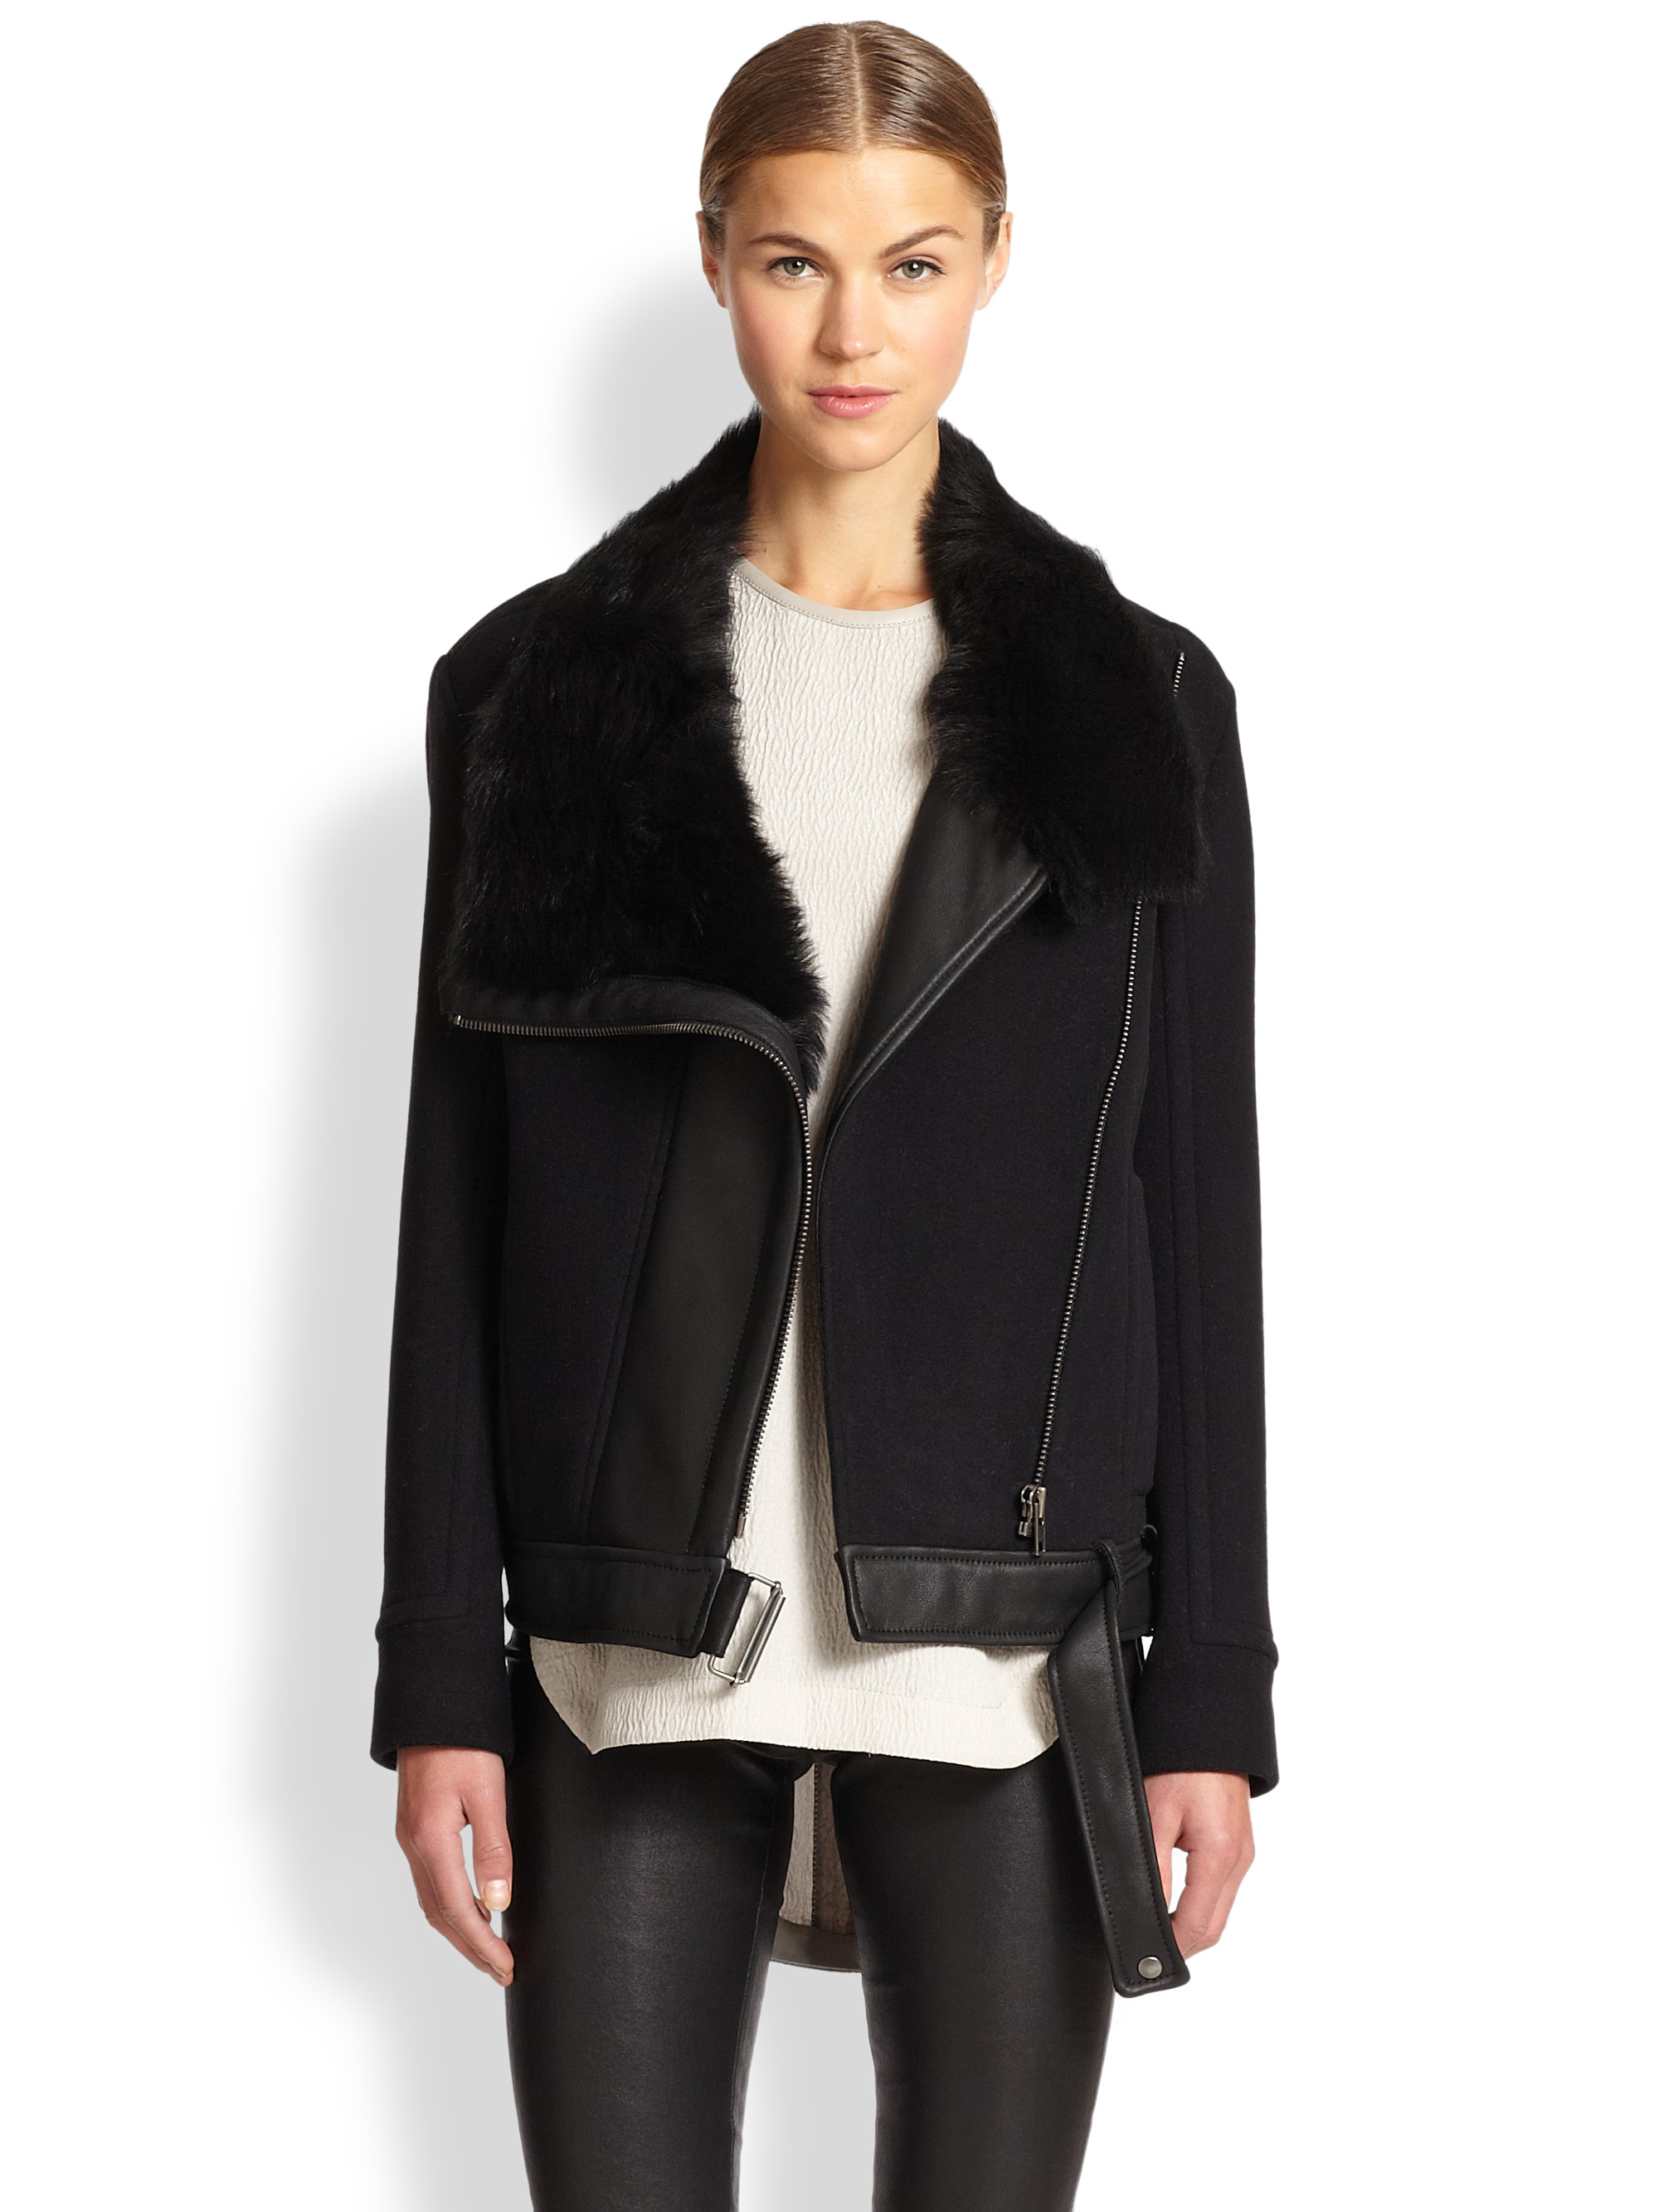 Helmut lang Inclusion Leather/lamb Shearling Jacket in Black | Lyst